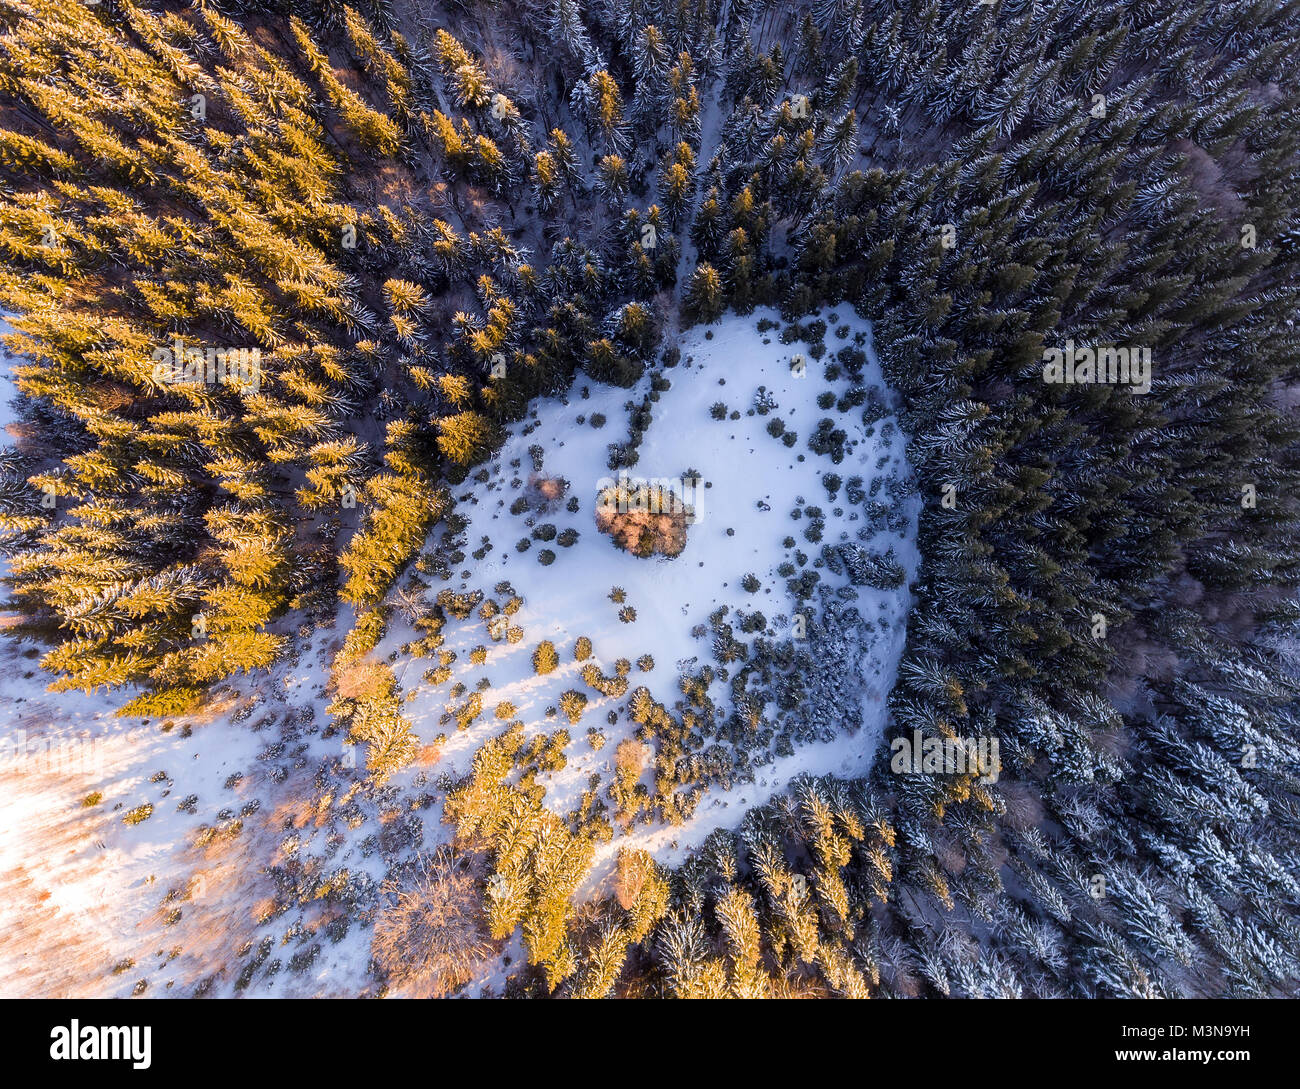 Aerial View Of Winter Forest Covered In Snow Drone Photography